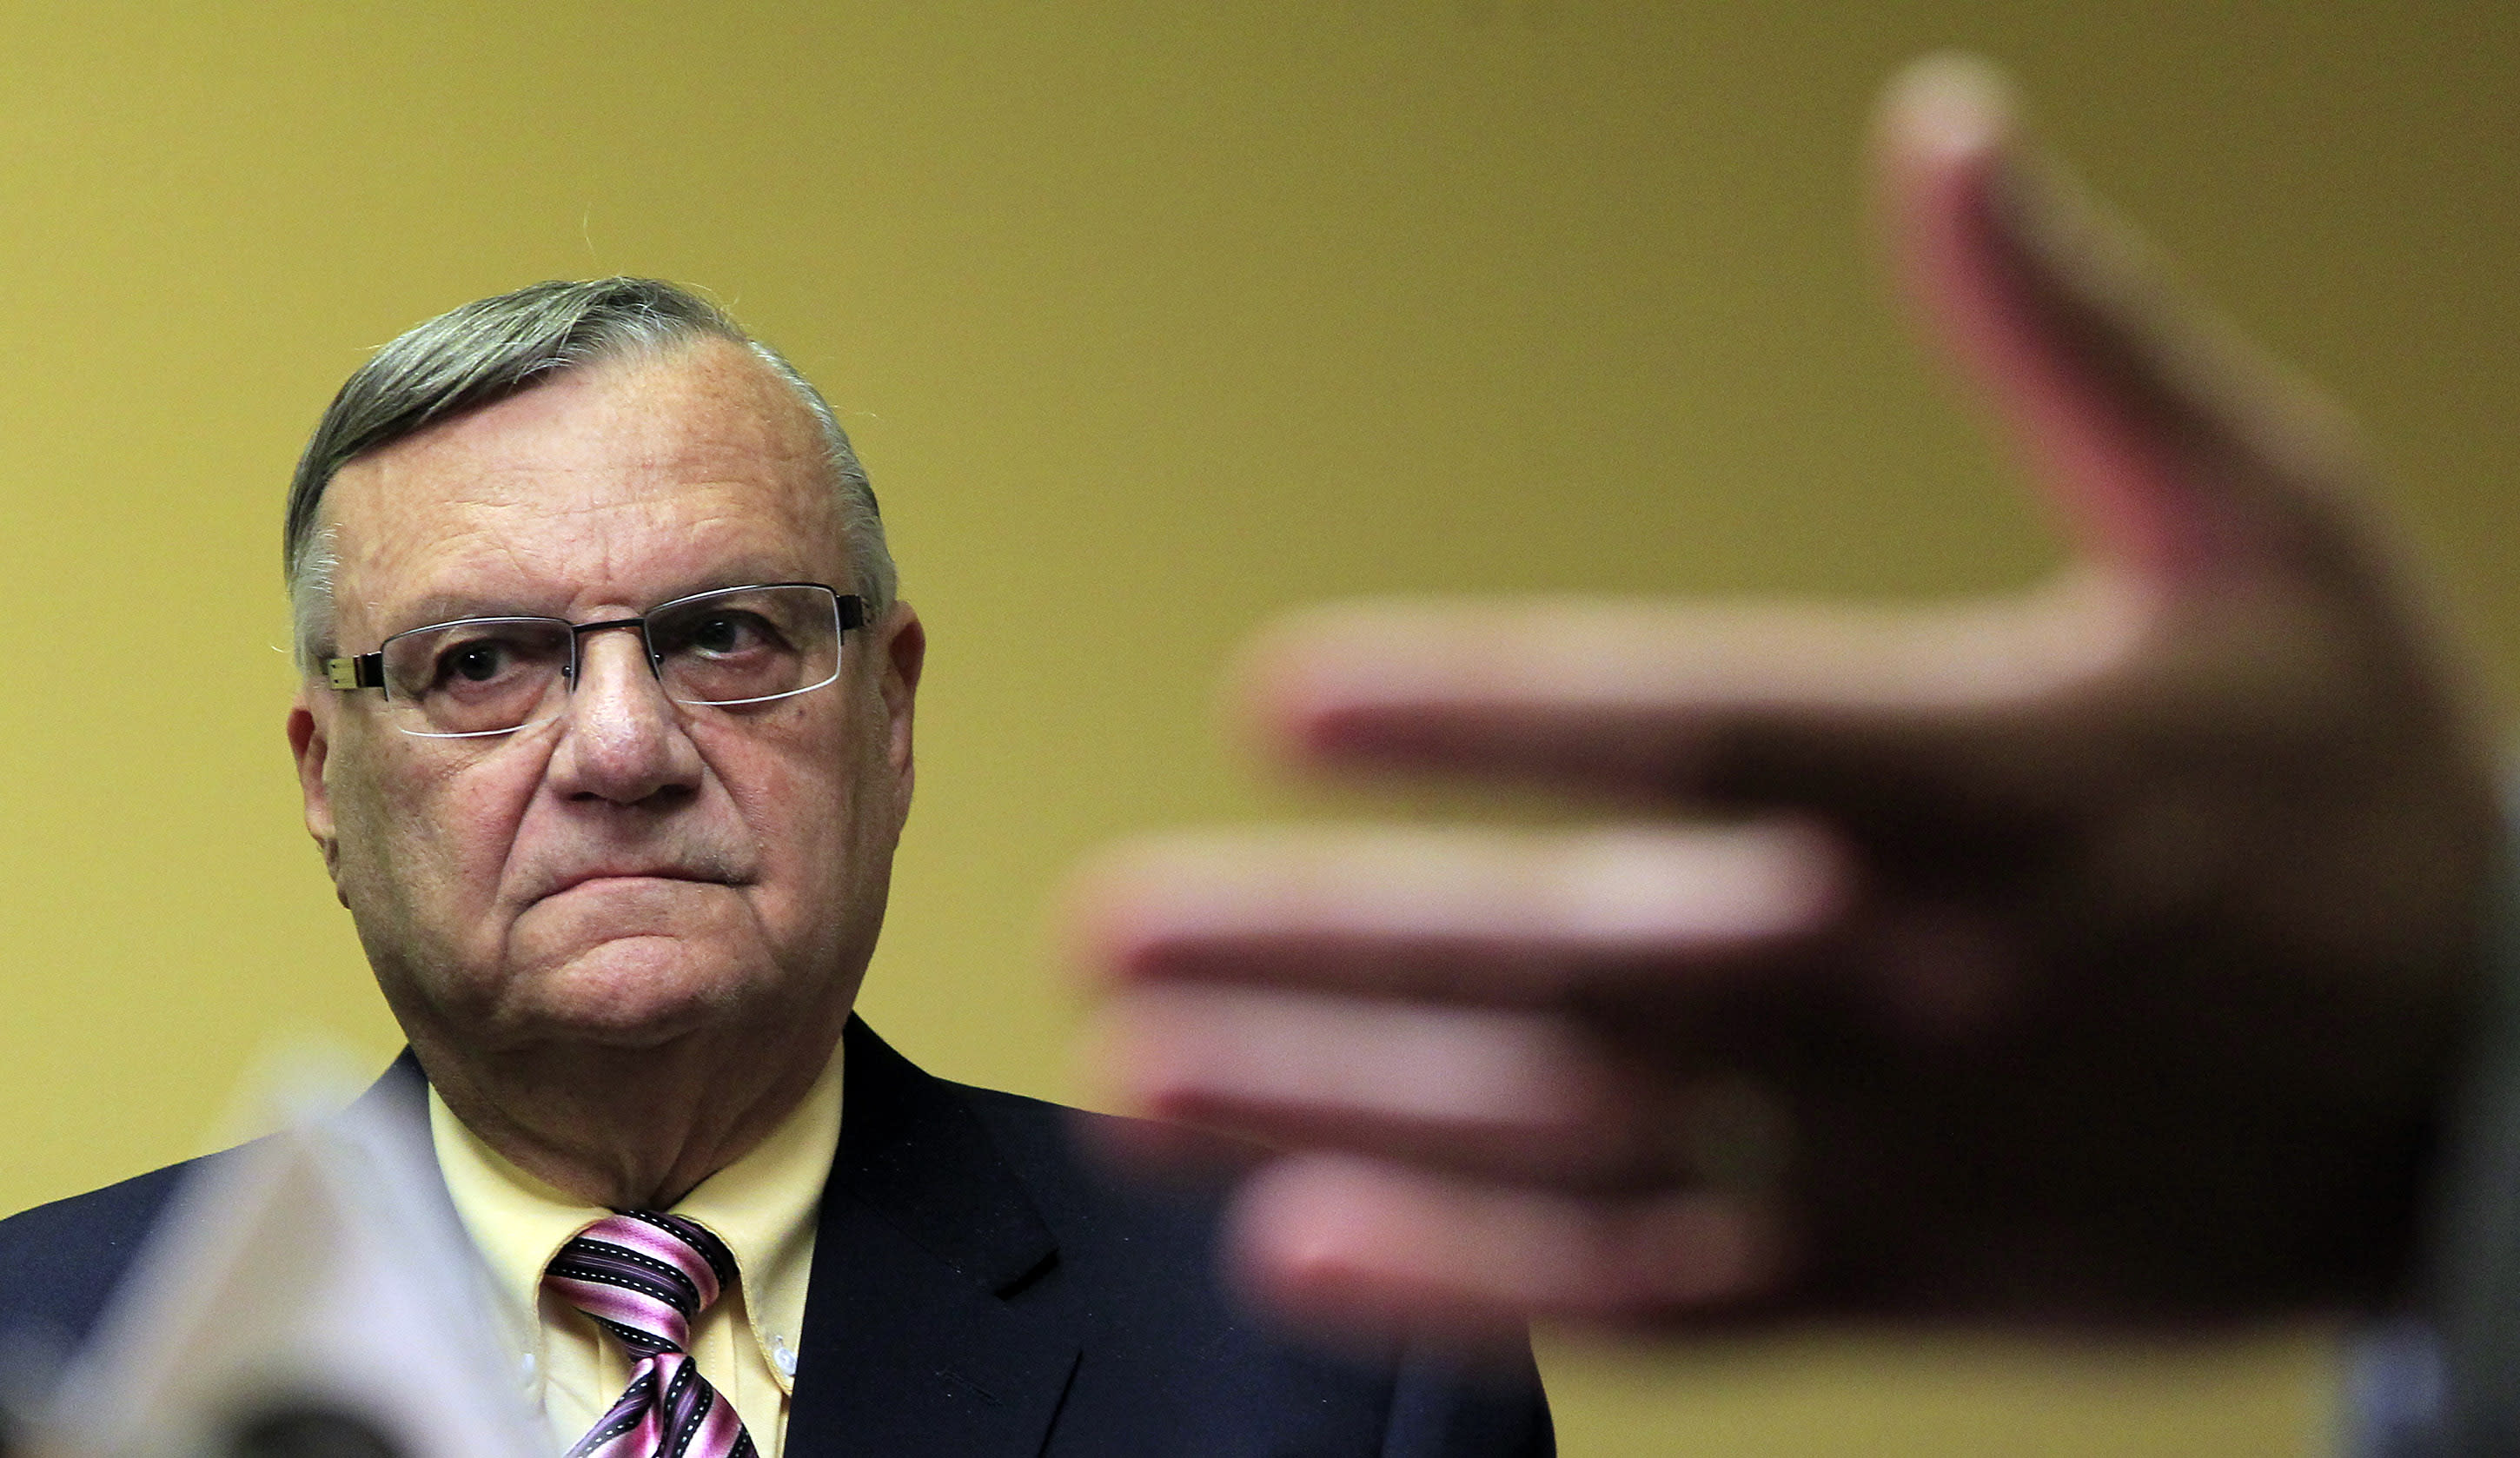 Maricopa County Sheriff Joe Arpaio, listens to one of his attorneys explain the latest developments while holding a news conference after federal authorities announced that the sheriff has negotiated in bad faith and risks ending settlement talks Tuesday, April 3, 2012, in Phoenix.(AP Photo/Ross D. Franklin, file)